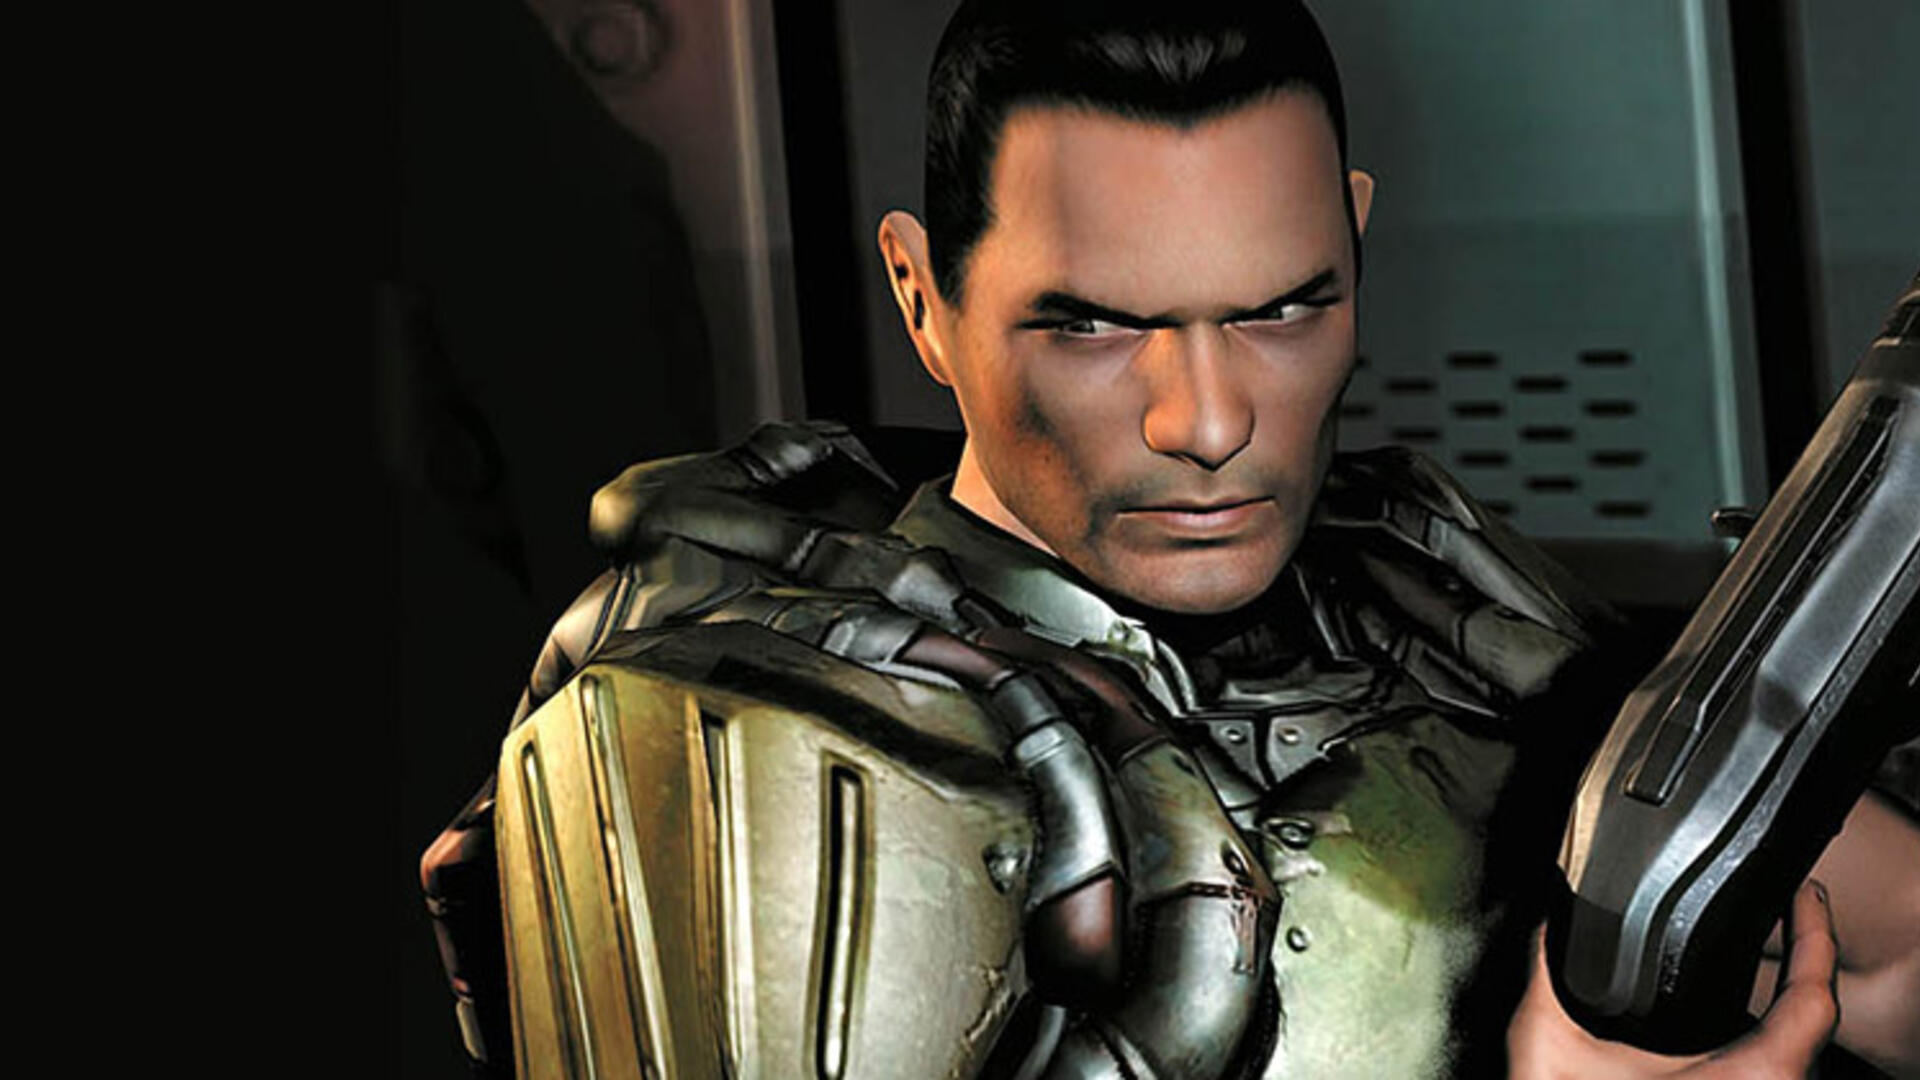 DOOM 3 and the Challenge of Living up to Your Own Legacy